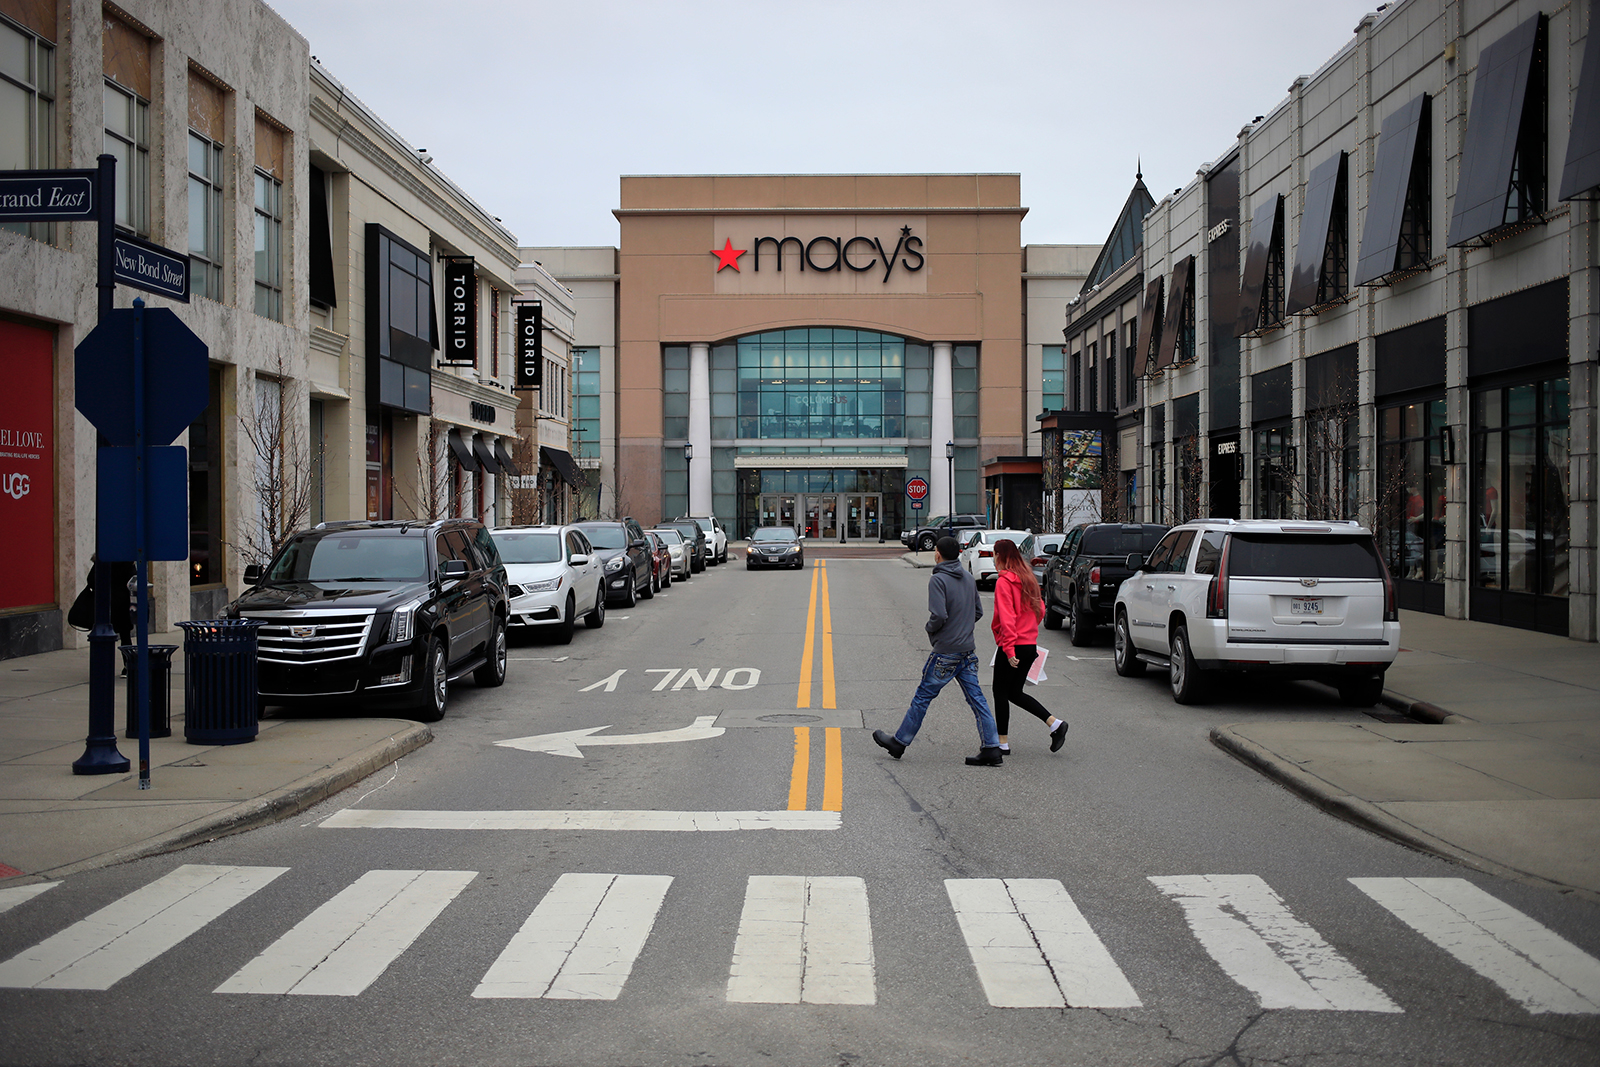 Investors are betting on a Macy's revival. Should they be?